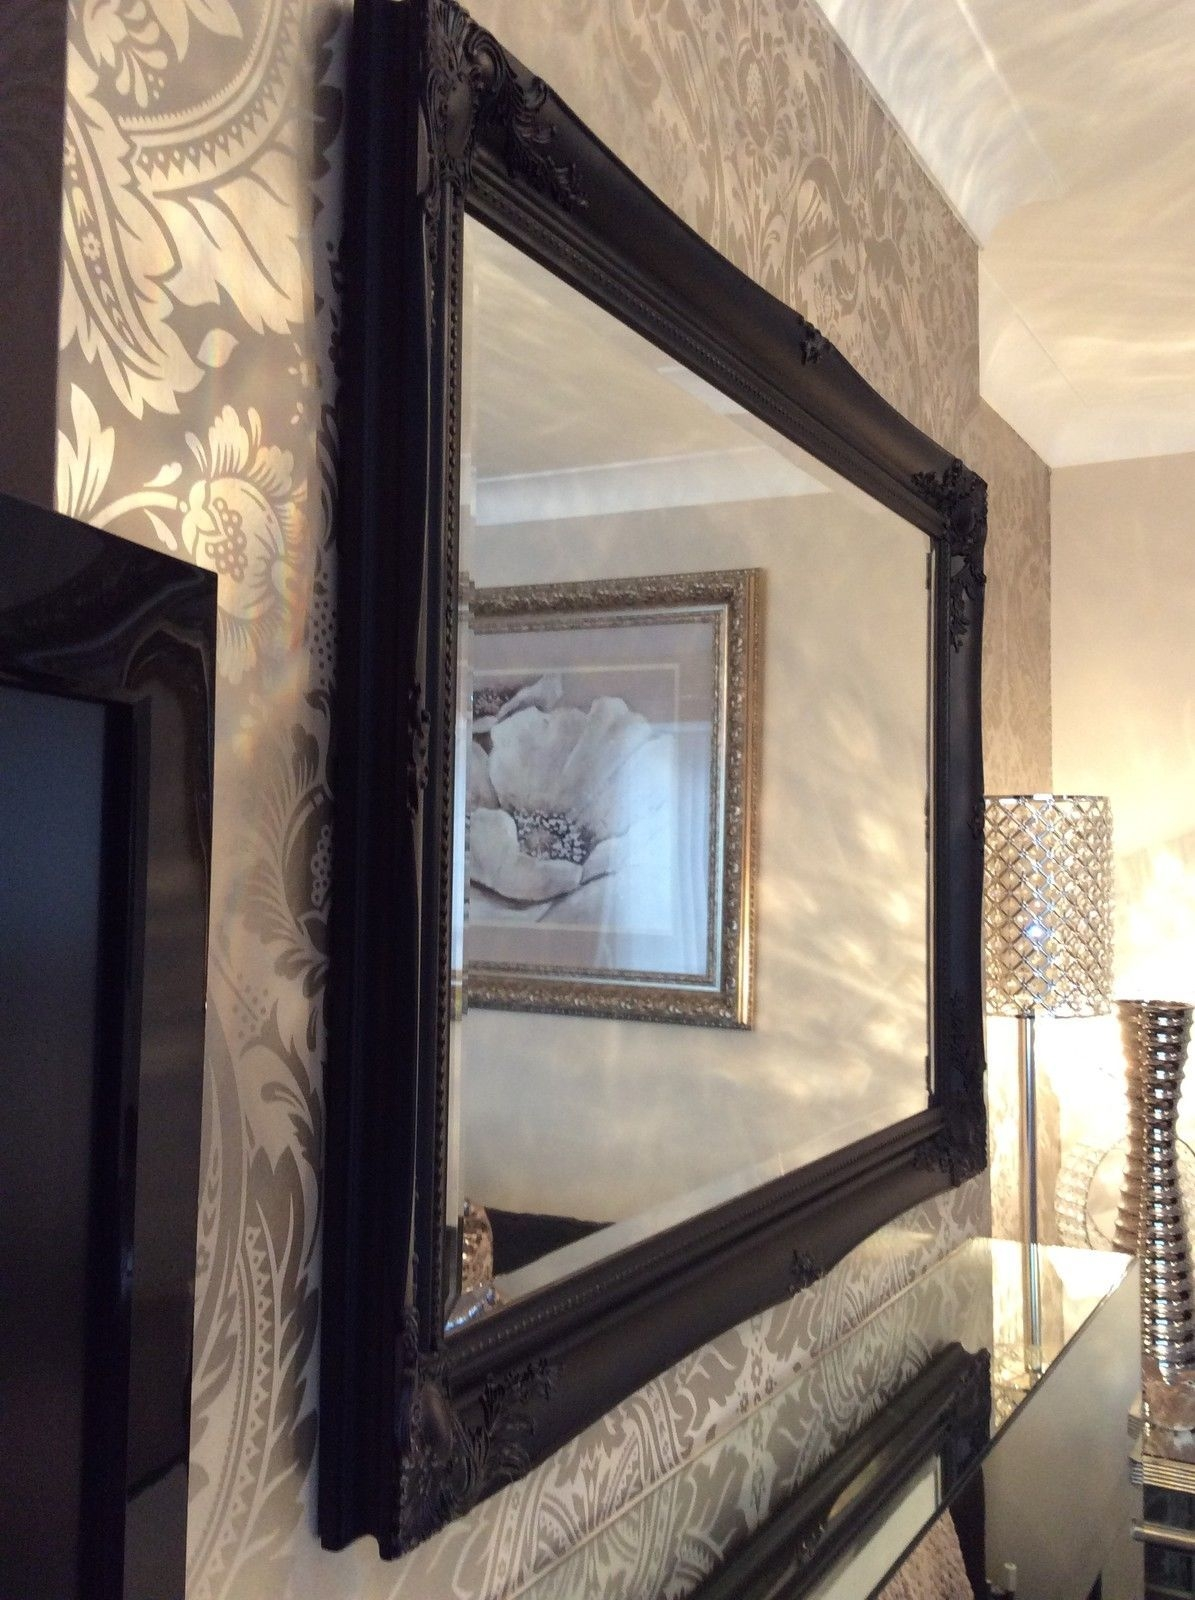 Black Shab Chic Framed Ornate Overmantle Wall Mirror Range Of With Regard To Large Black Ornate Mirror (Image 5 of 15)